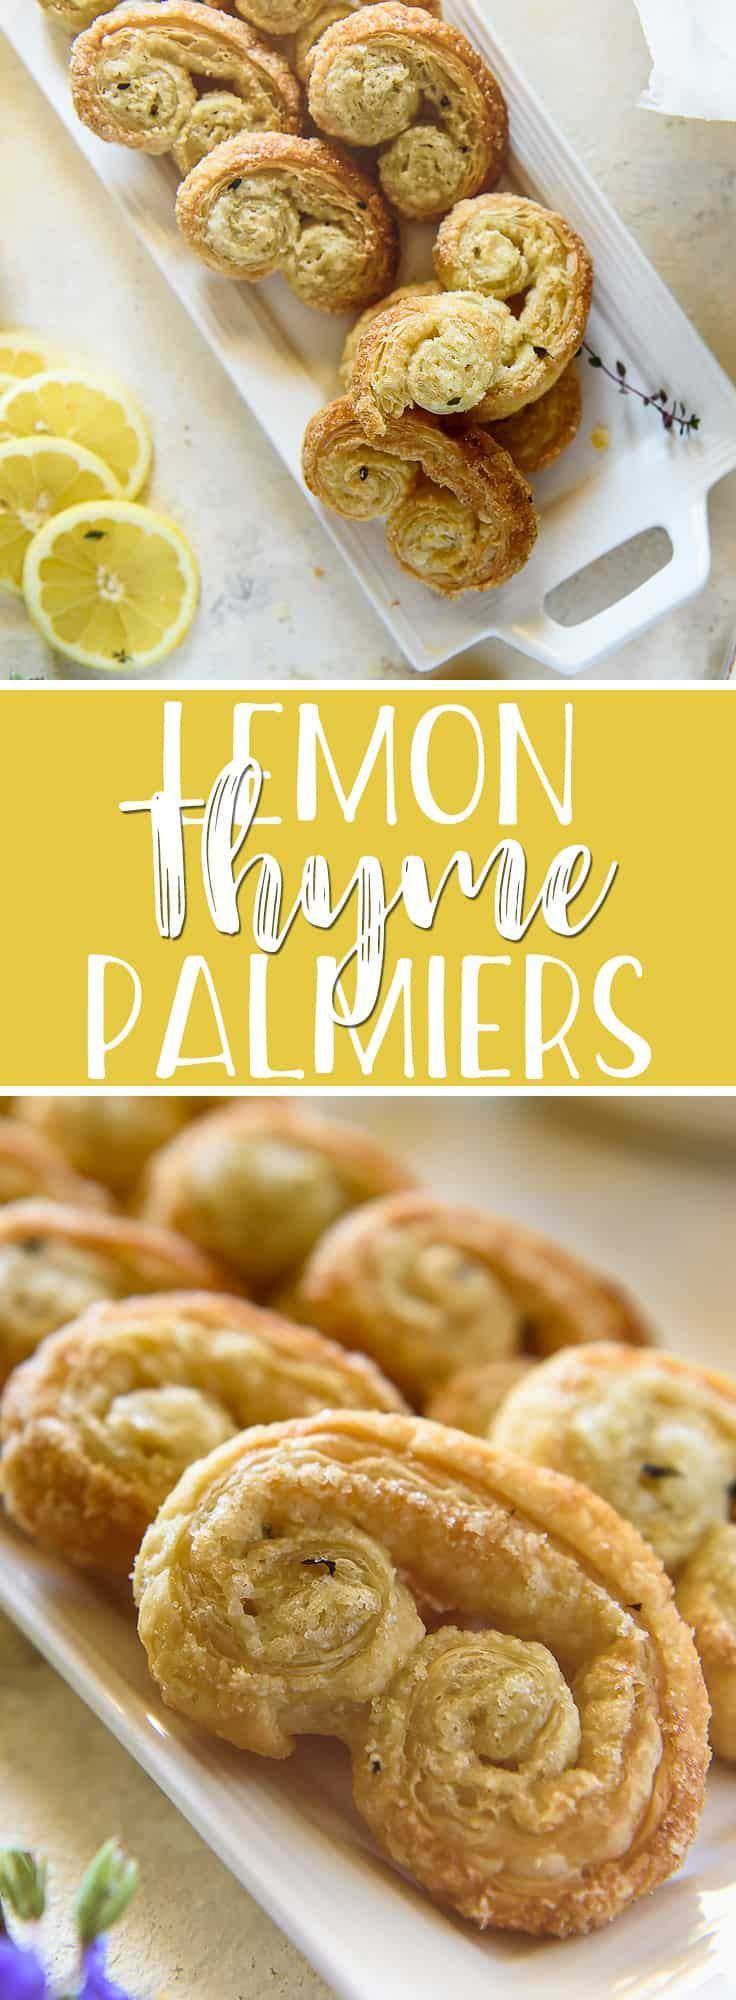 Get a sweet dose of citrus with a few of these super easy, 4-ingredient Lemon Thyme Palmiers! Sheets of buttery store-bought puff pastry are transformed into crispy springtime treats with some help from a bit of sugar, lemon zest, and fresh thyme. #sponsored #inspiredbypuff #puffpastry #lemon #thyme #palmier #elephantears #pastry #springdessert #brunch #springtime #recipe